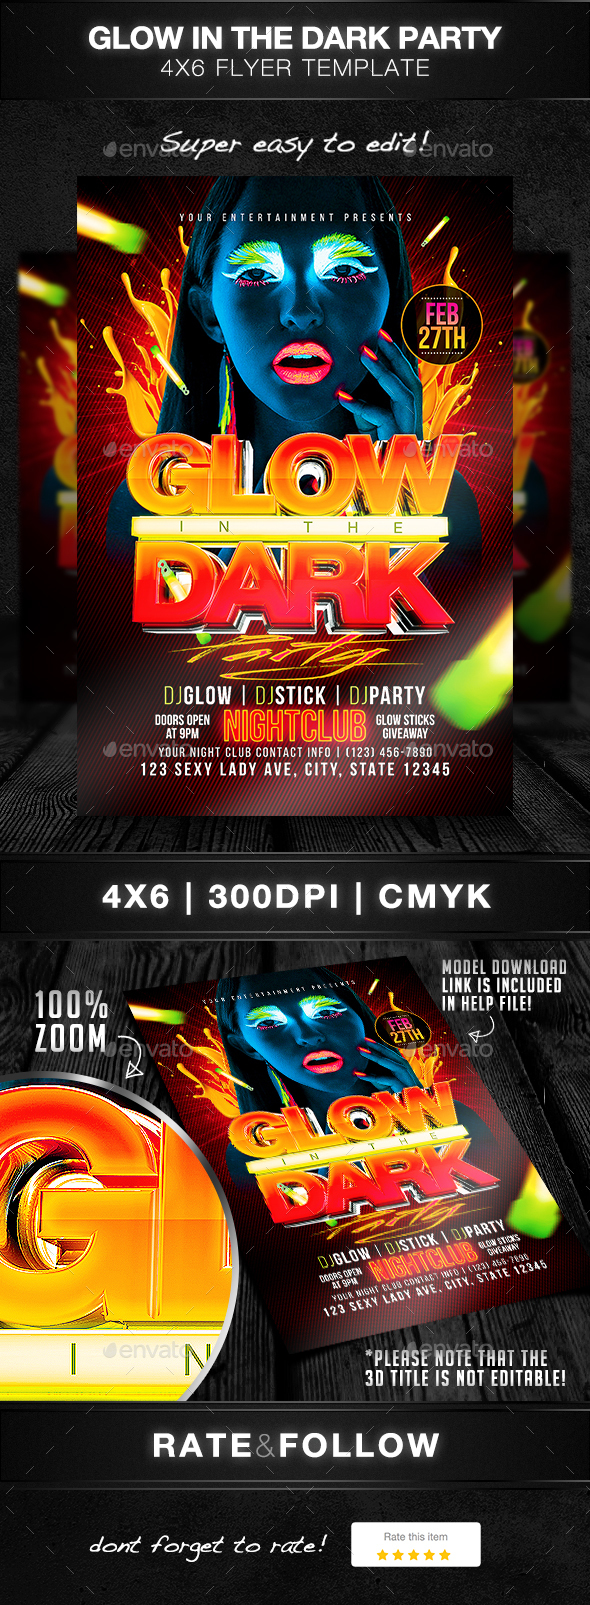 Glow In The Dark Party Flyer Template by DesignsByDior | GraphicRiver